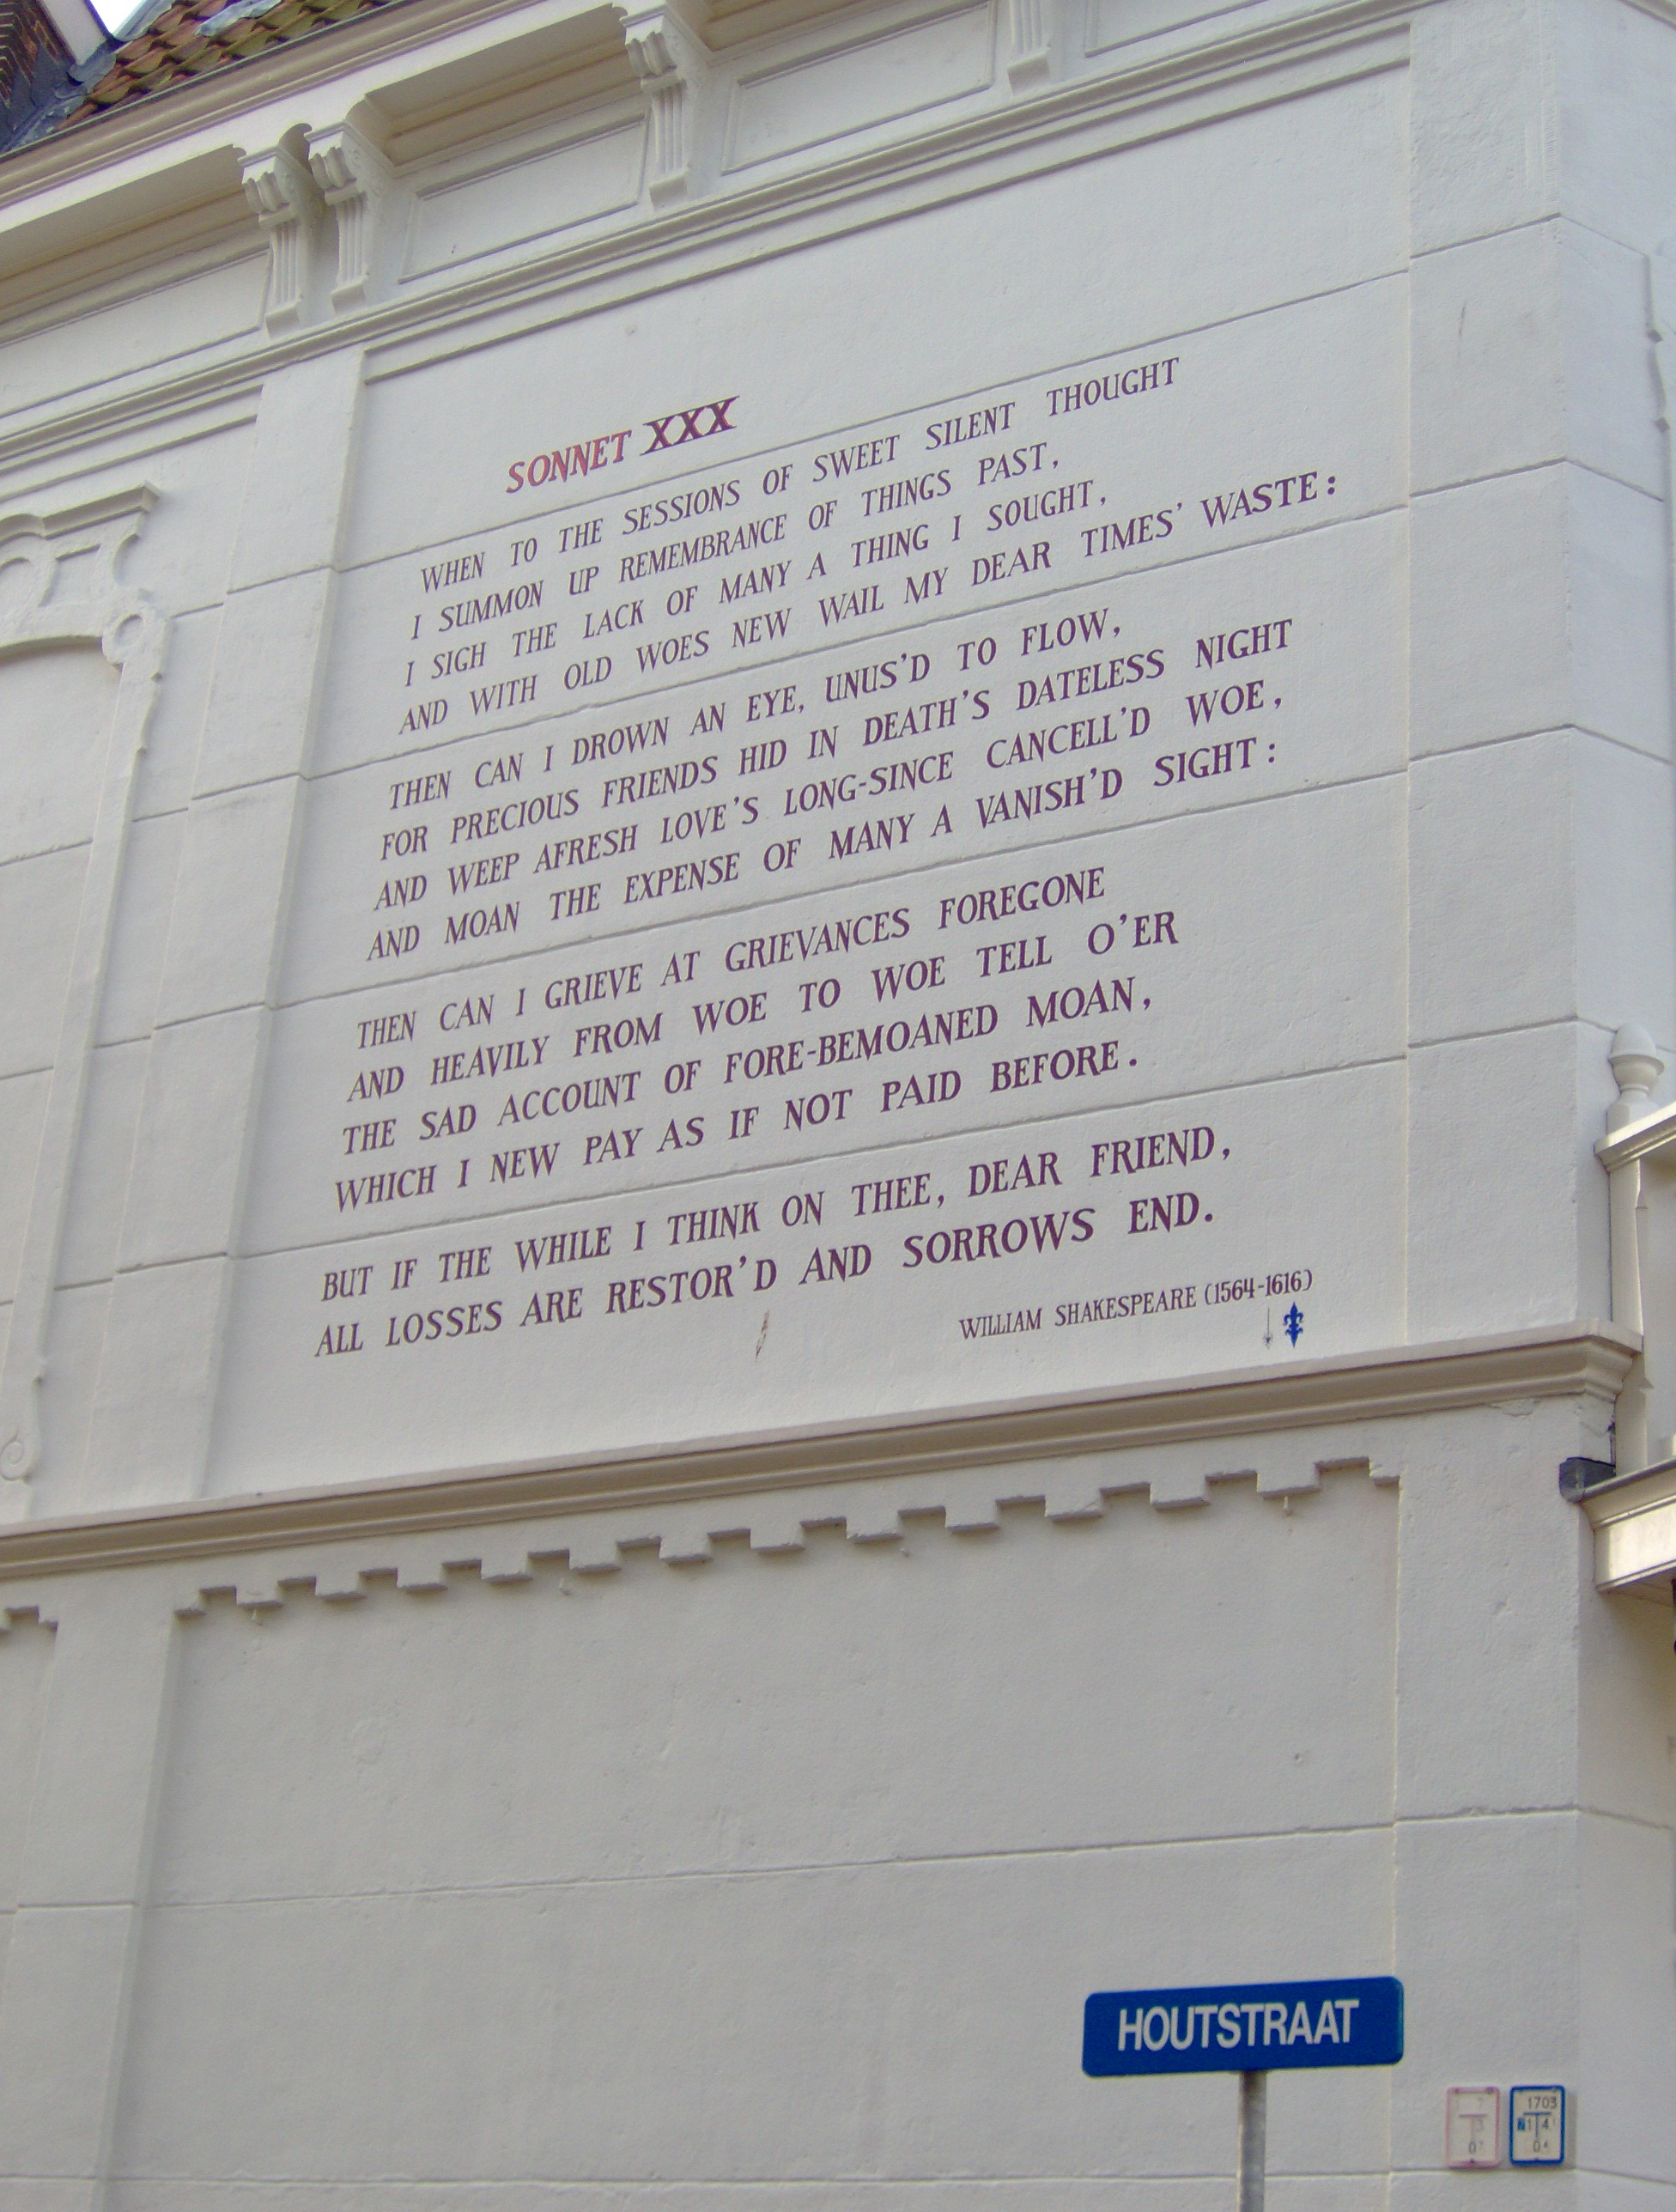 shakespearen sonnet and sonnet writework english sonnet xxx of william shakespeare on a wall of the building at rapenburg 30